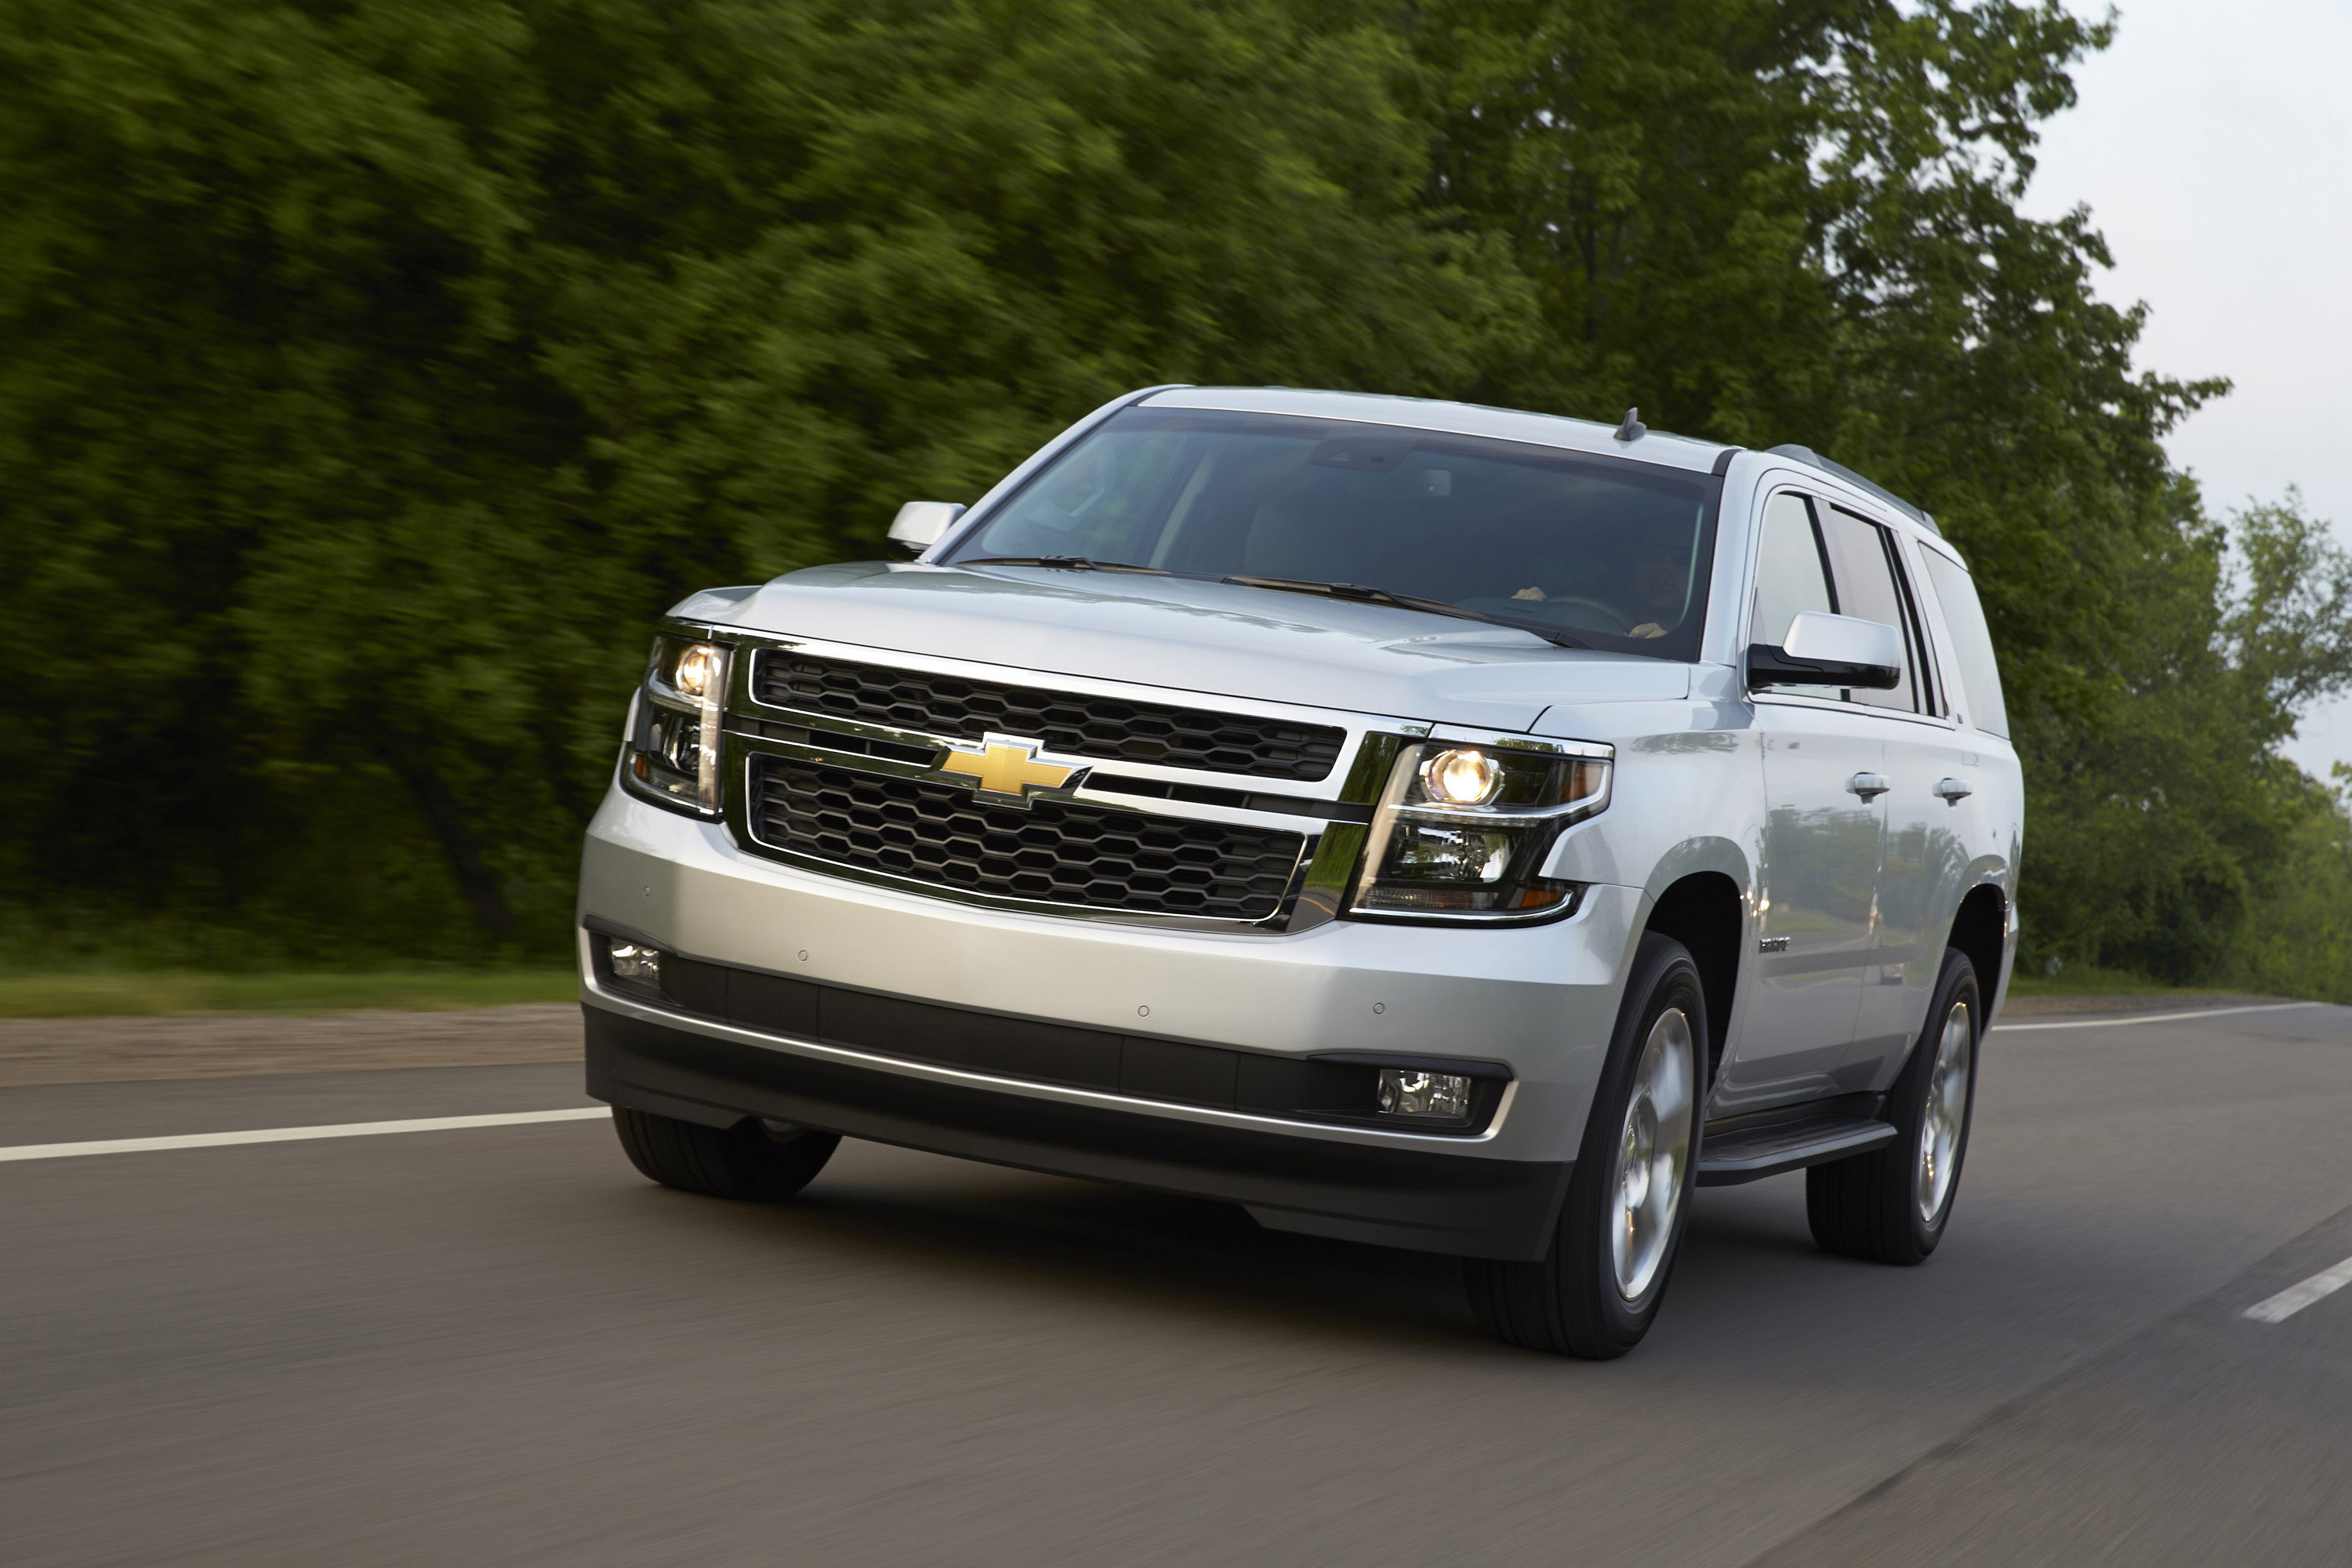 2015 chevrolet tahoe and suburban to feature onstar 4g lte. Black Bedroom Furniture Sets. Home Design Ideas